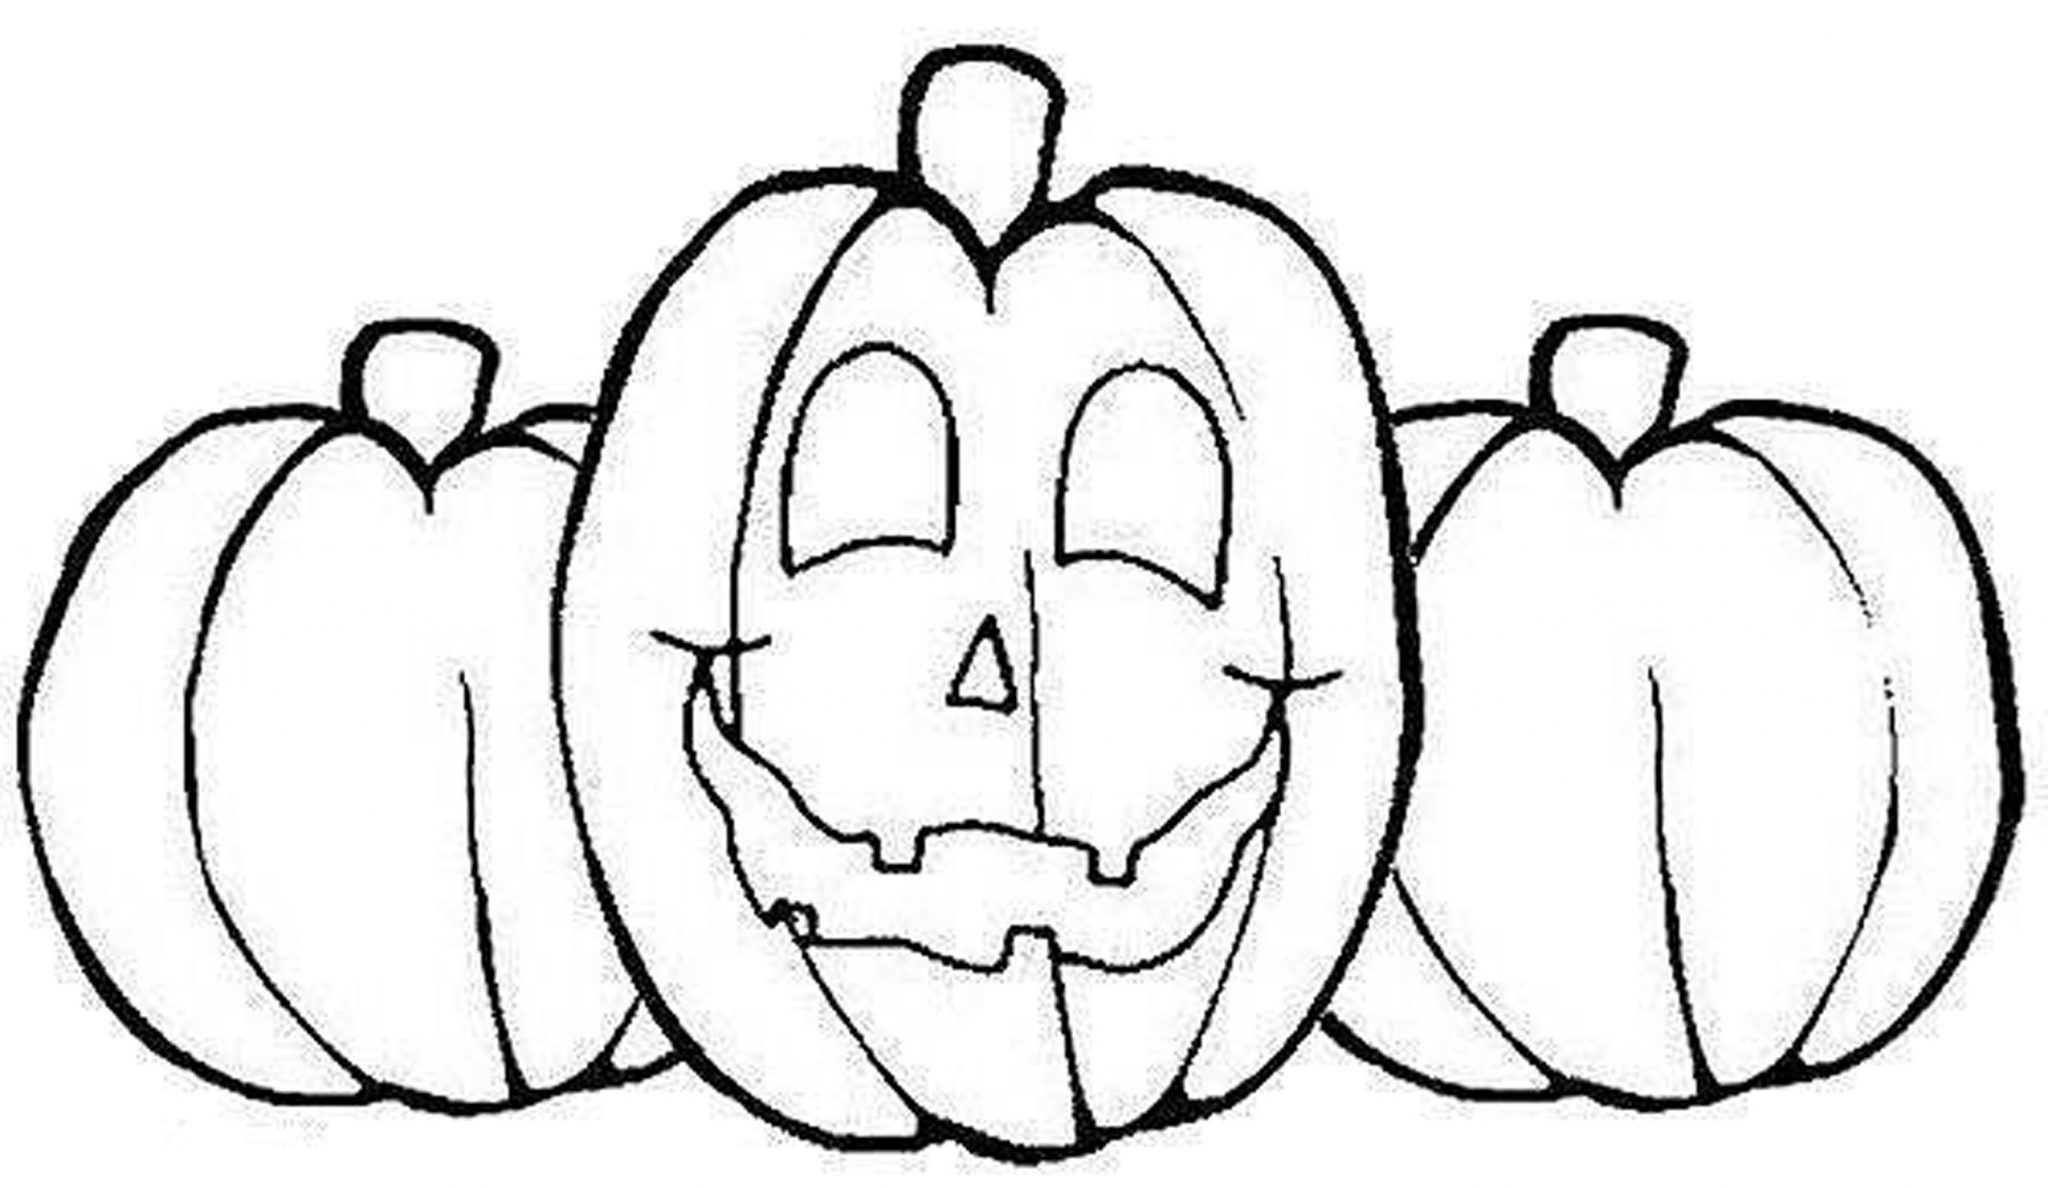 printable pumpkin coloring pages free printable pumpkin coloring pages for kids cool2bkids coloring pumpkin printable pages